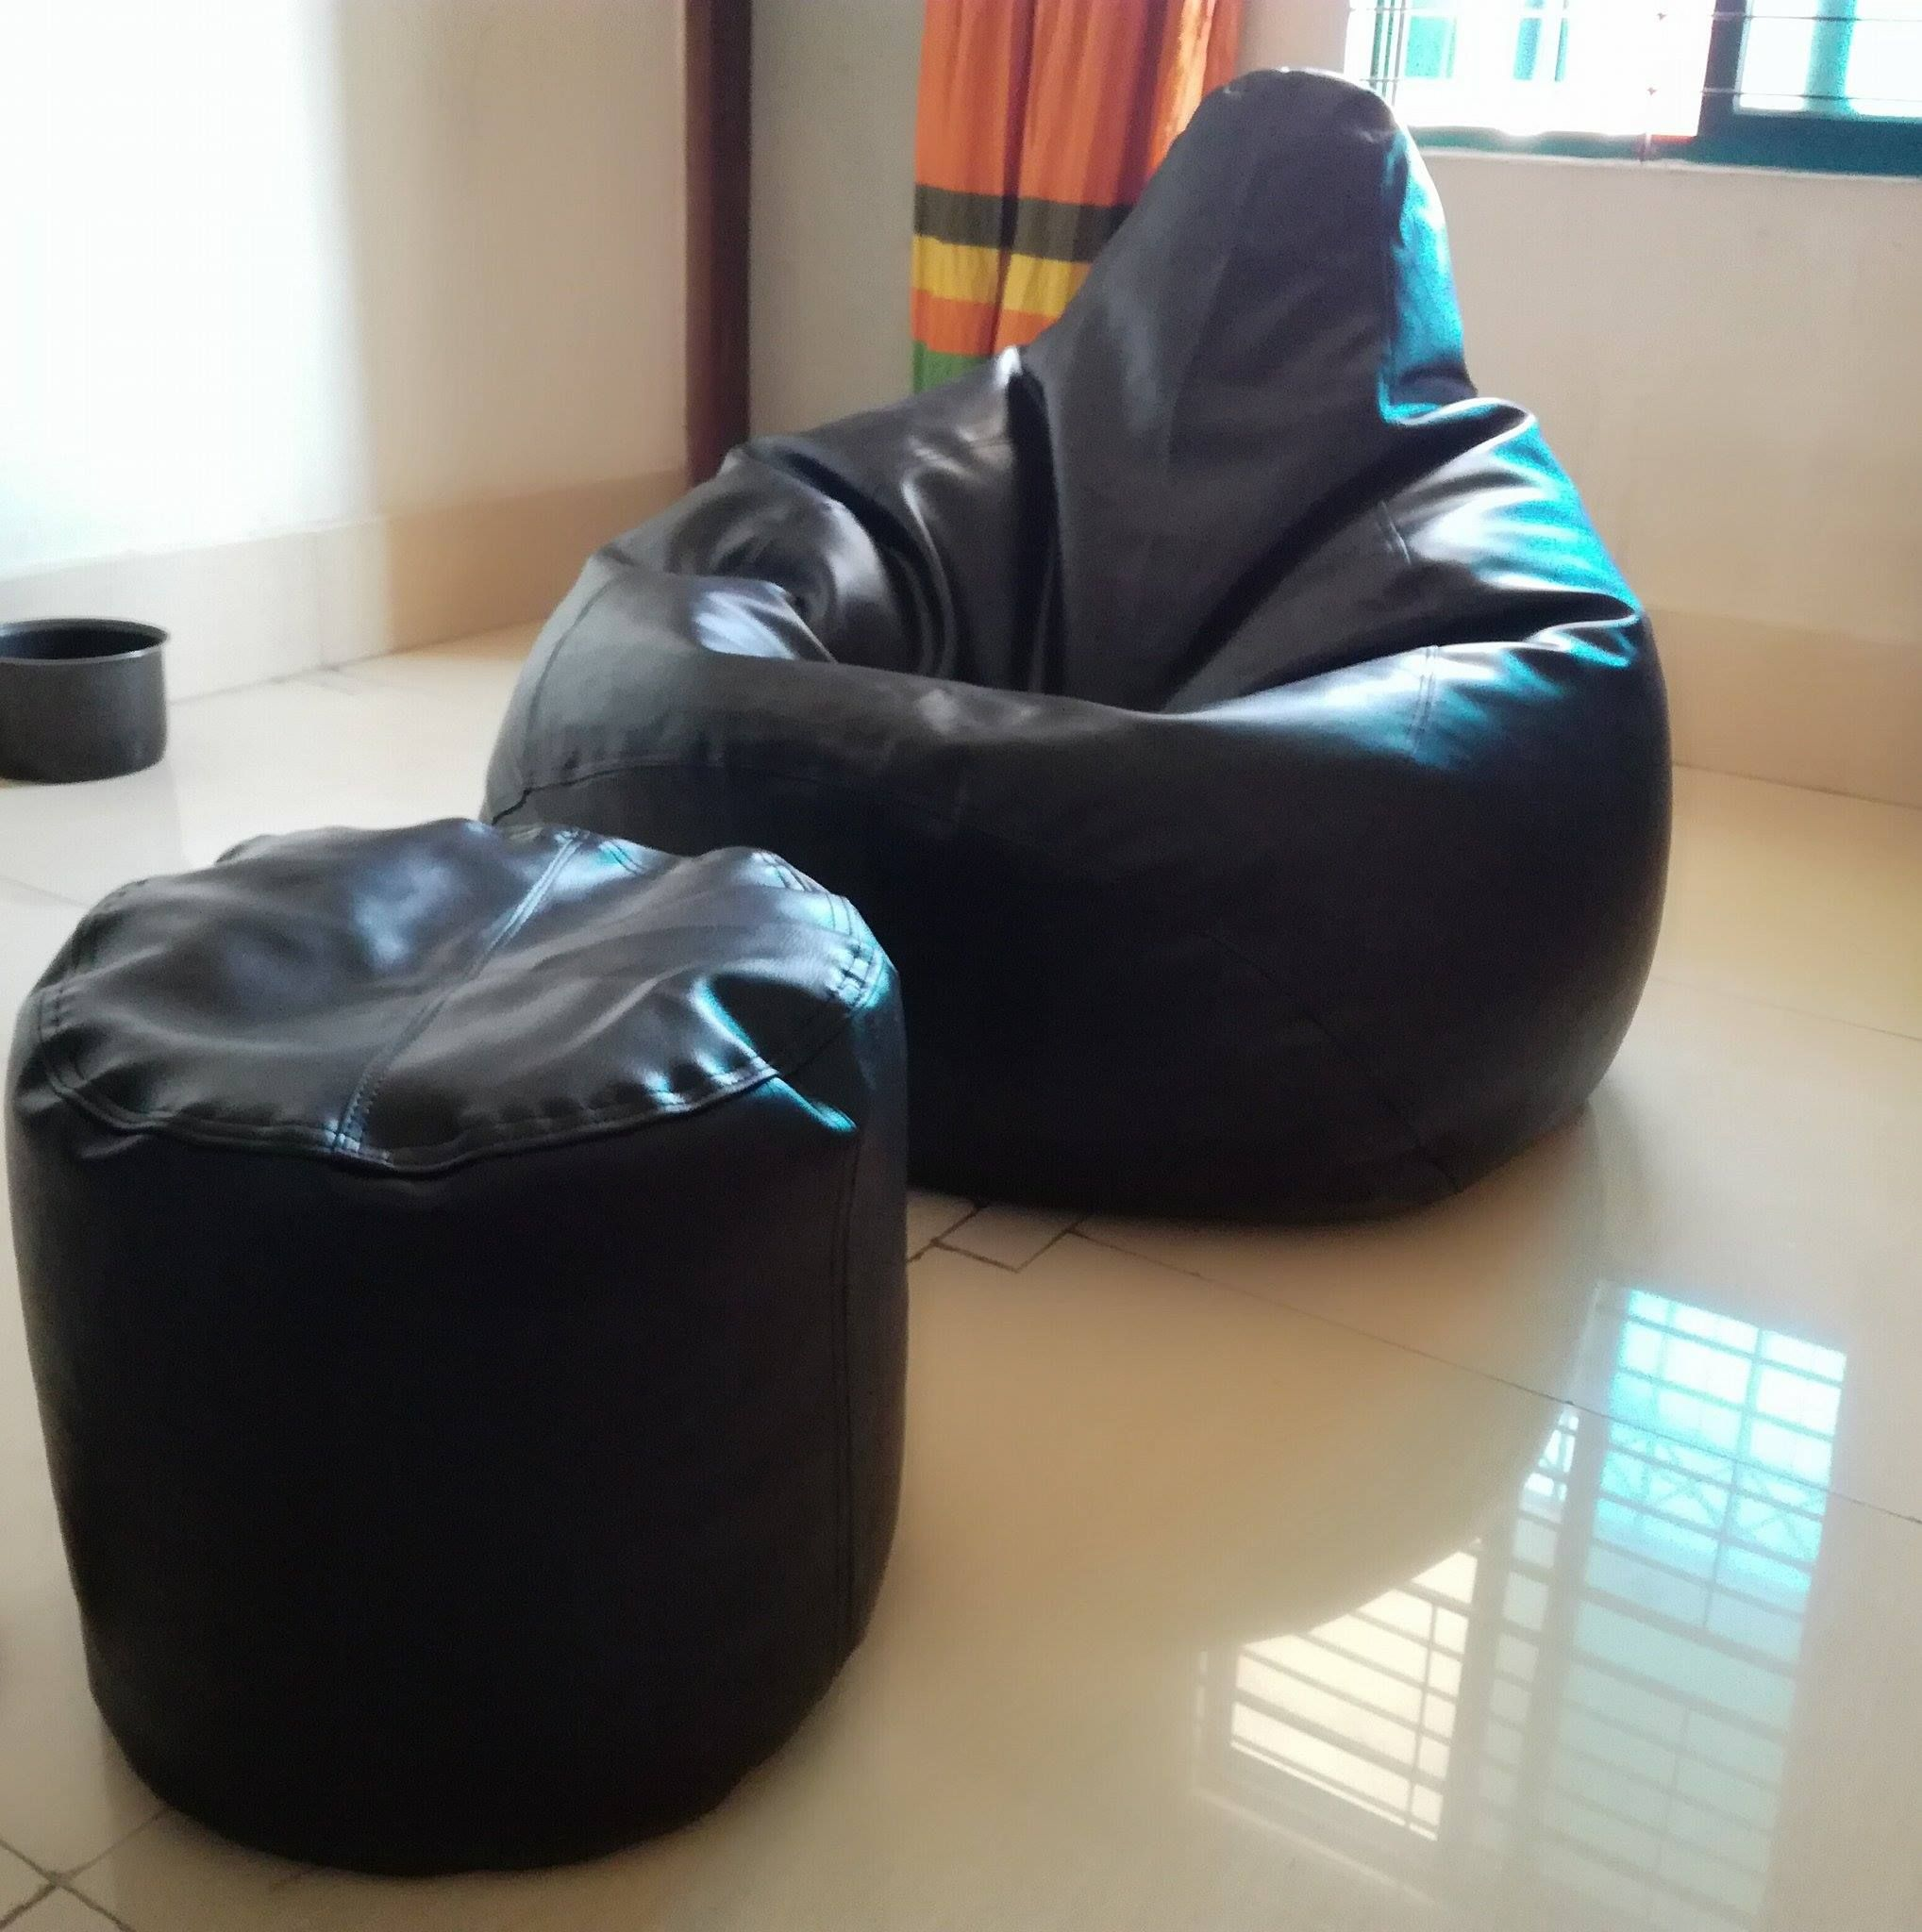 LAZY DUDE Is A Bean Bag Manufacturer Online Seller In Dhaka Bangladesh Believes Quality With Affordable Price Lazy Depends